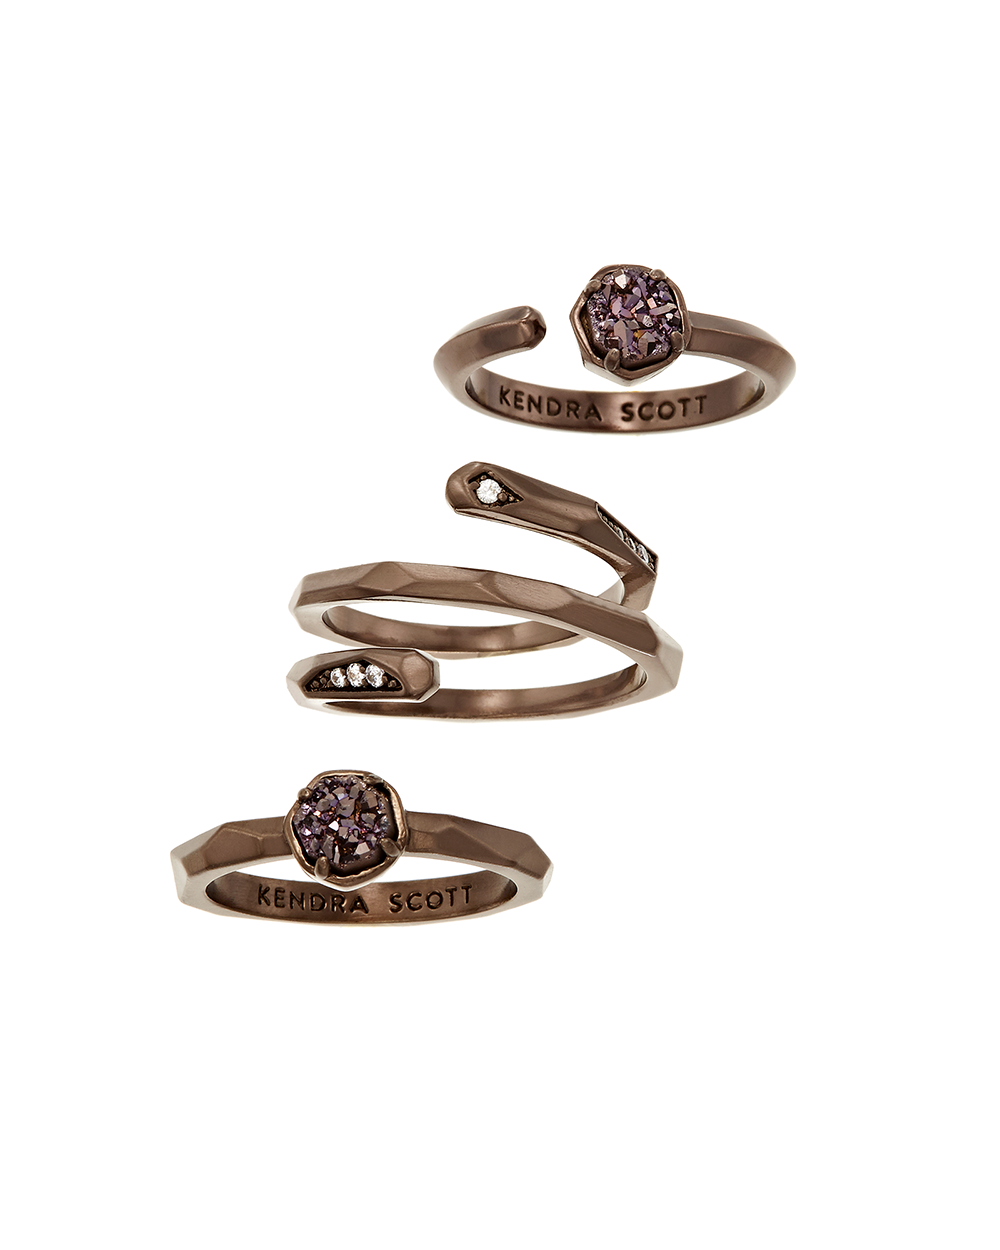 Kendra Scott Warren Ring Set In Chocolate Drusy - Kendra Scott Jewelry Wishlist